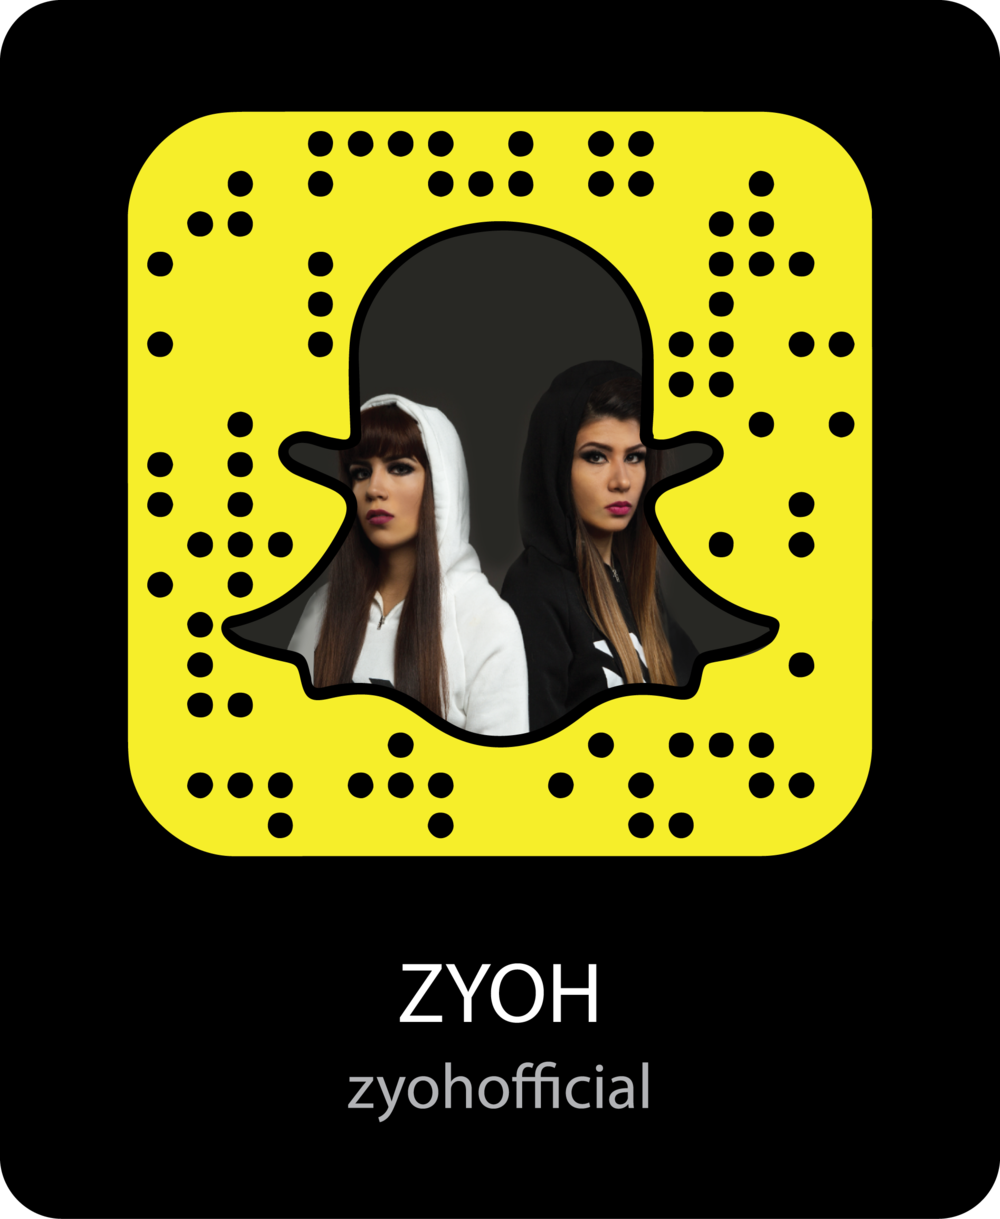 zyohofficial-snapchat-snapcode.png